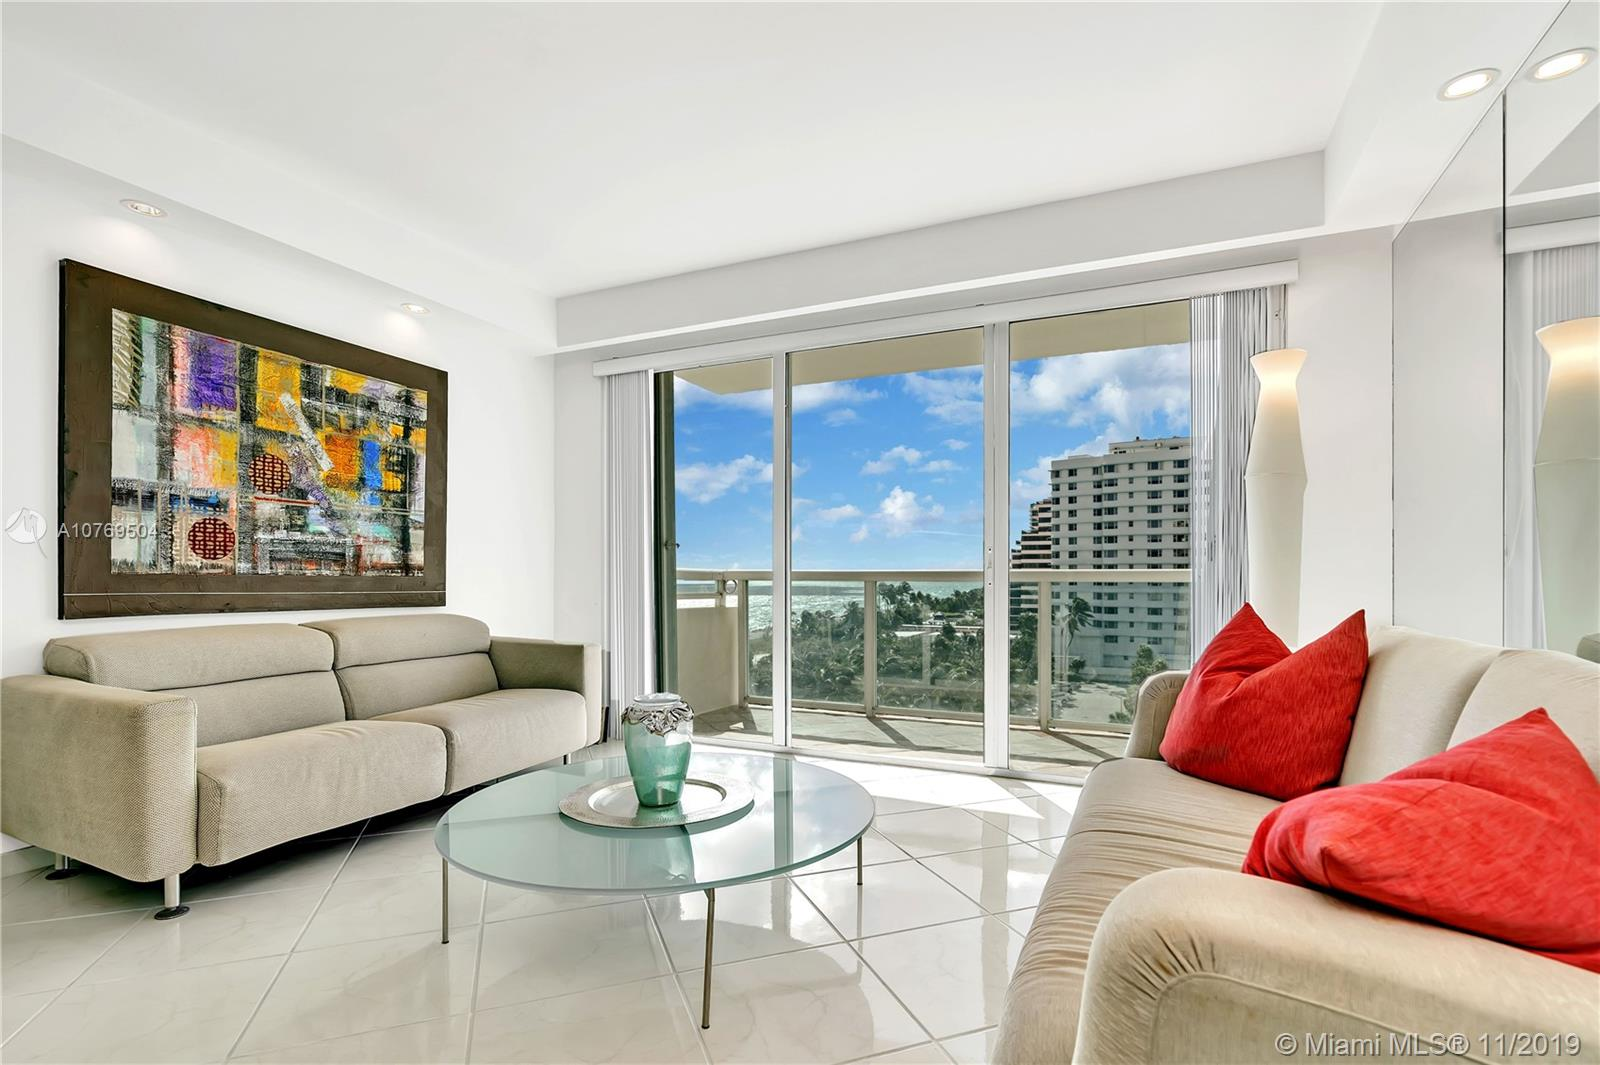 Beautiful and spacious (over 1500 sqft) 2 beds 2 full bath on La Costa , water view from every room, Ocean and Intracoastal views.  Located in the center of Miami Beach, at La Costa 7th floor, w/ ceramic floors. New baths. Easily converted to 3 beds. Over sized rooms w/ 3 walk-in closets.White kitchen cabinets & counter tops & brand NEW SS appliances. Wet bar in a spacious living/dining area. Open balcony, sliding door accordion shutters. Freshly painted,  Unit is offered furnished, w/ storage space &1 assigned parking + extra parking unassigned. Pet friendly, building  offers heated pool, BBQ area, gym,bike room, party room, valet & security. Basic cable & hot water in included in the maintenance. Vacant and ready for occupancy. Can be rented right away. call LA for showings.